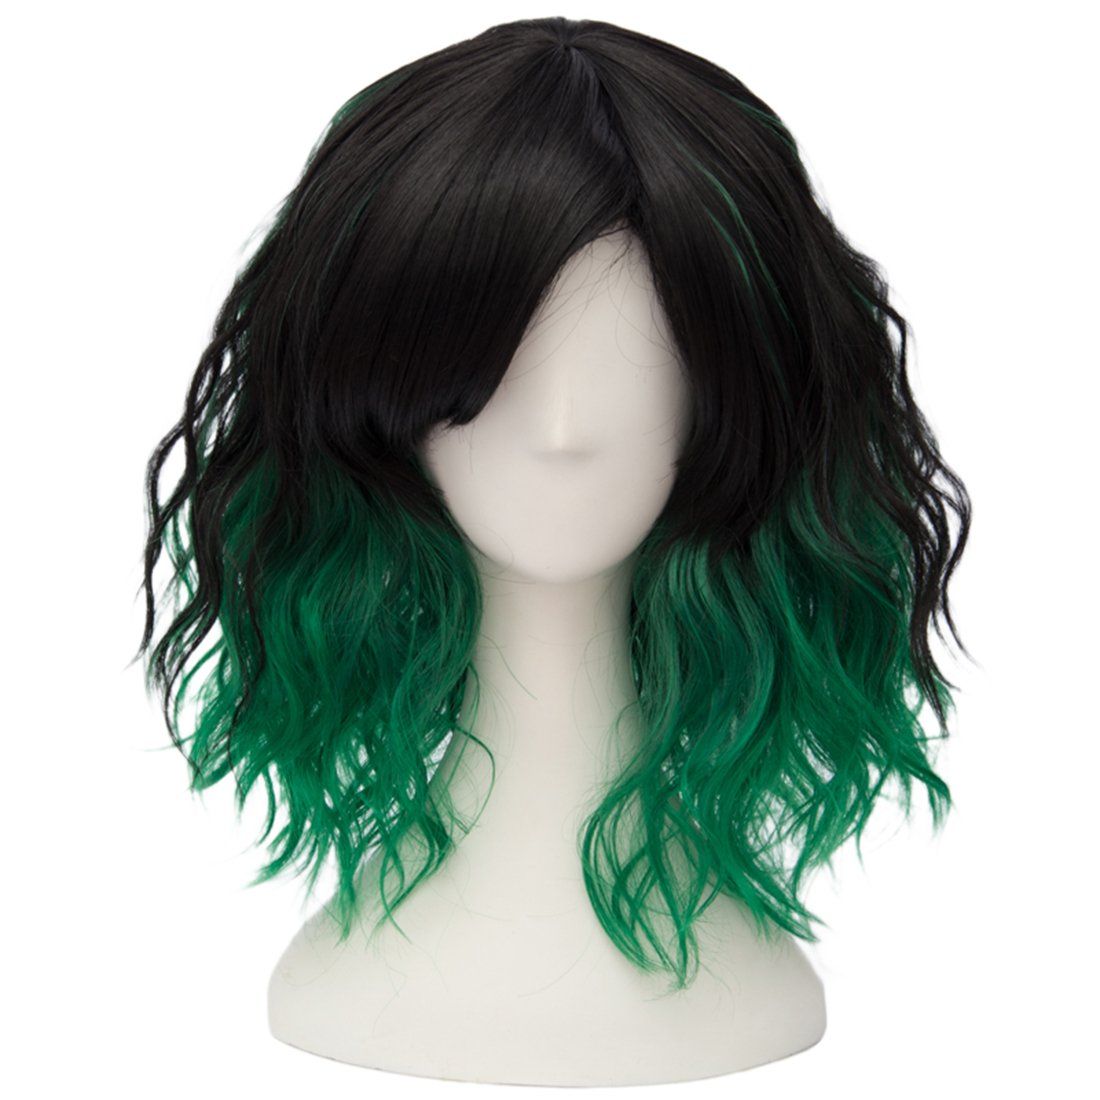 35cm Women Synthetic Ombre Wig Wavy Short Curly Hair Cosplay Anime Wig Free Cap